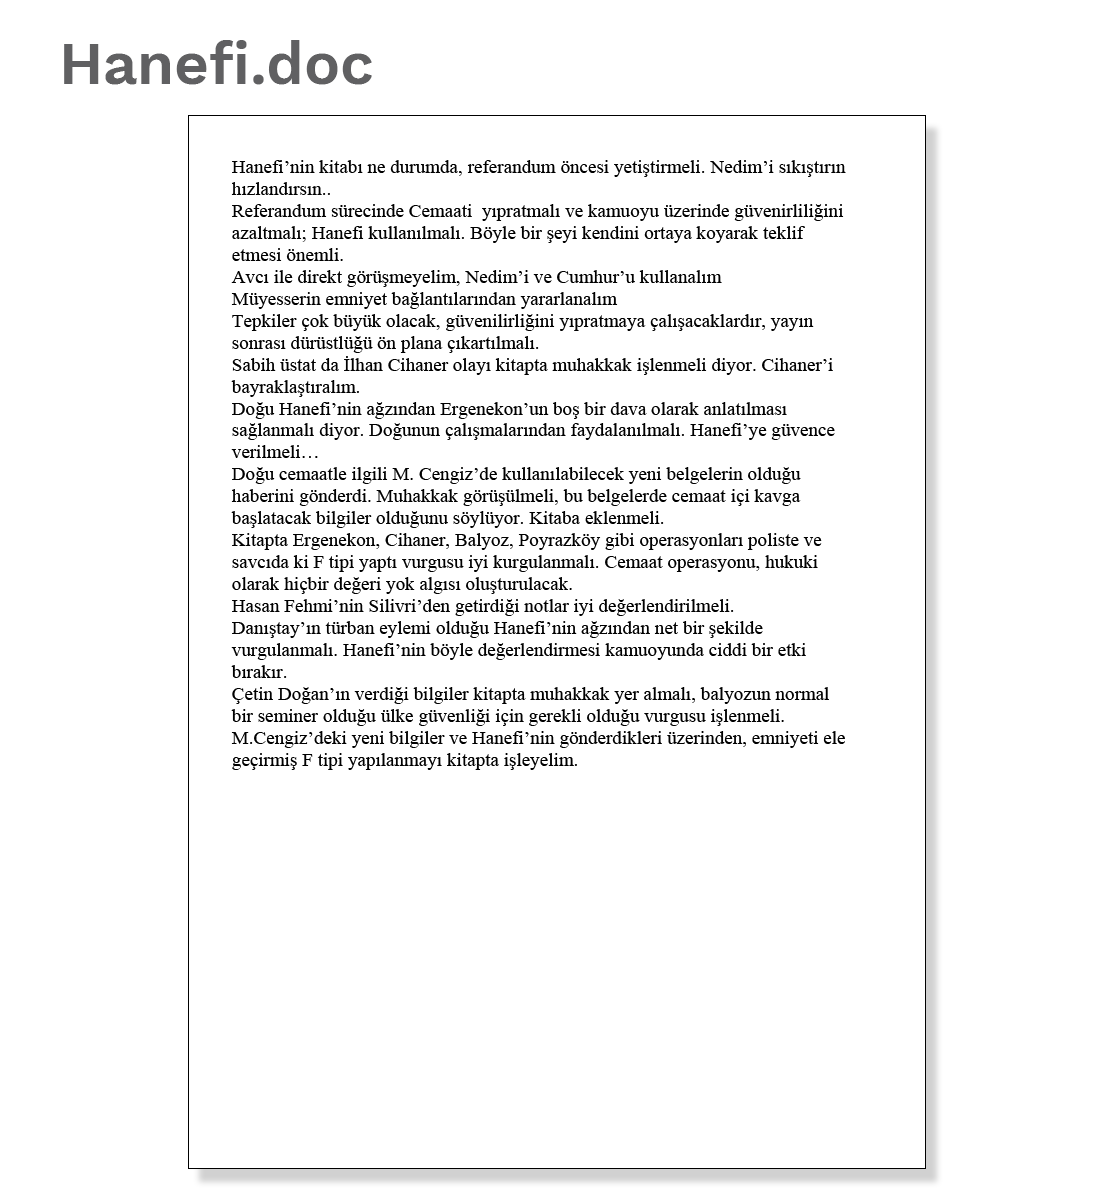 Document 2: Hanefi.doc